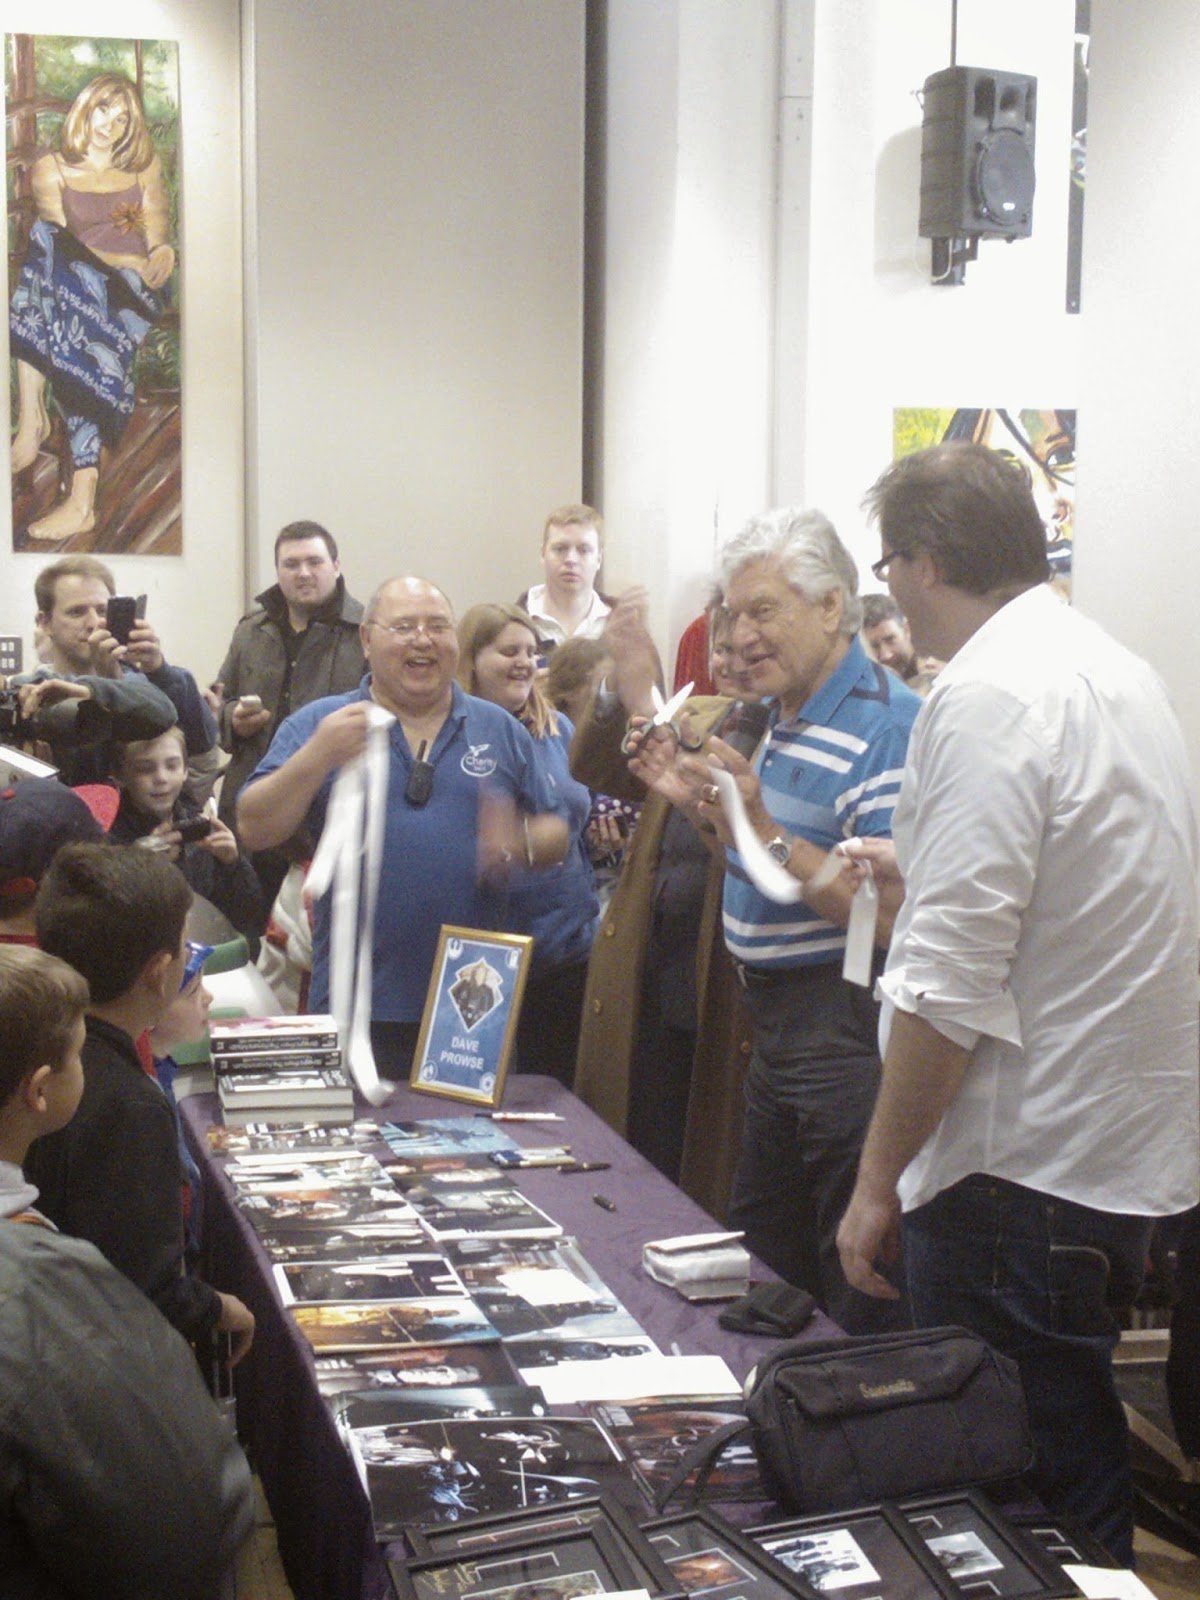 Dave Prowse [Darth Vader] @ Corsham Charity Sci-Fi fun day 2014